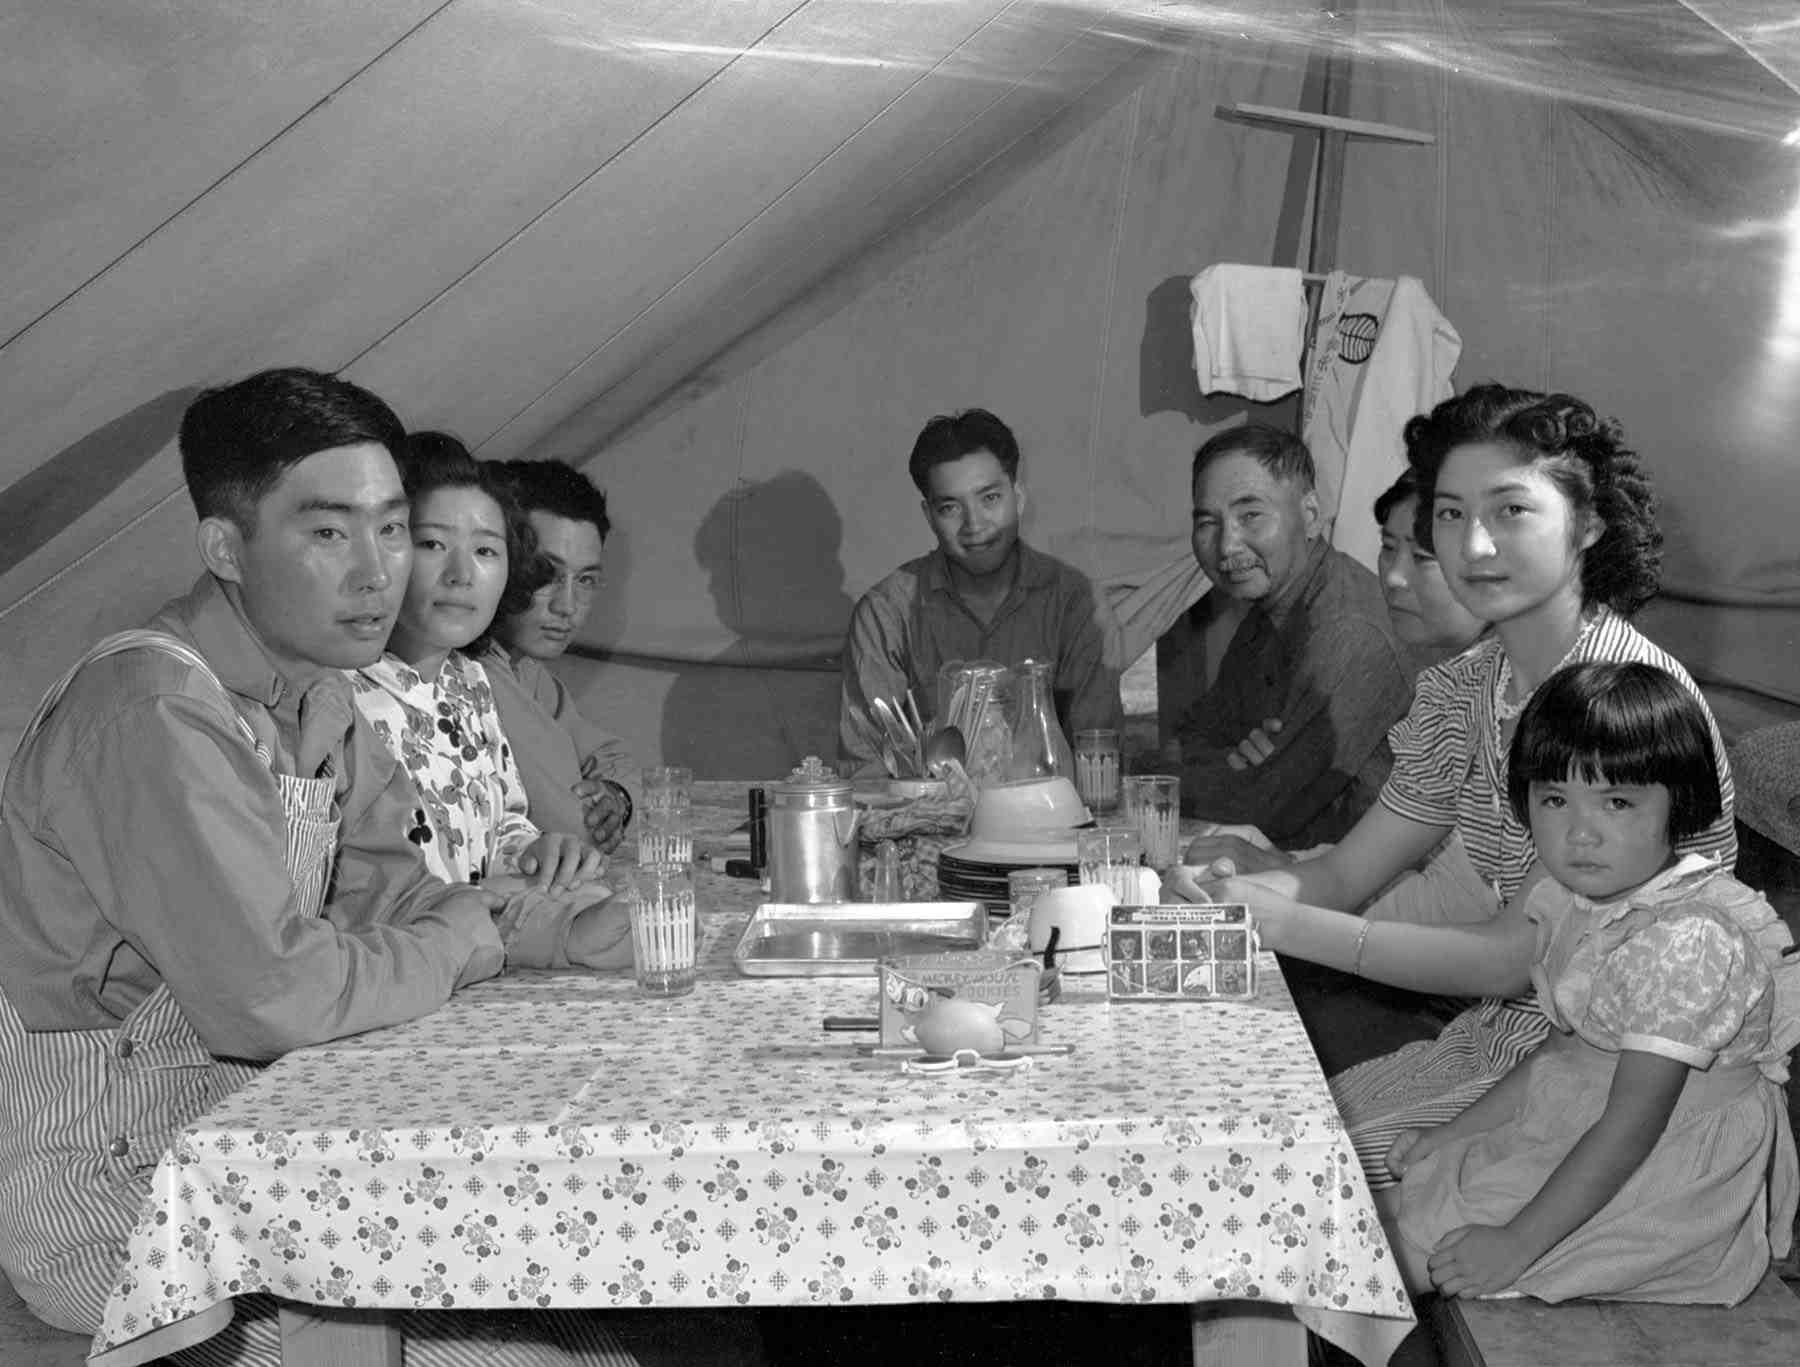 The Ouchida family at the Nyssa, Ore., farm labor camp, pictured clockwise from the lower left: Jack, Shizuko, Henry, Thomas, Kiuda, Shizuyo, Mary, and Rosie. (Library of Congress, Prints & Photographs Division, FSA-OWI Collection, LC-USF34-073354-D)